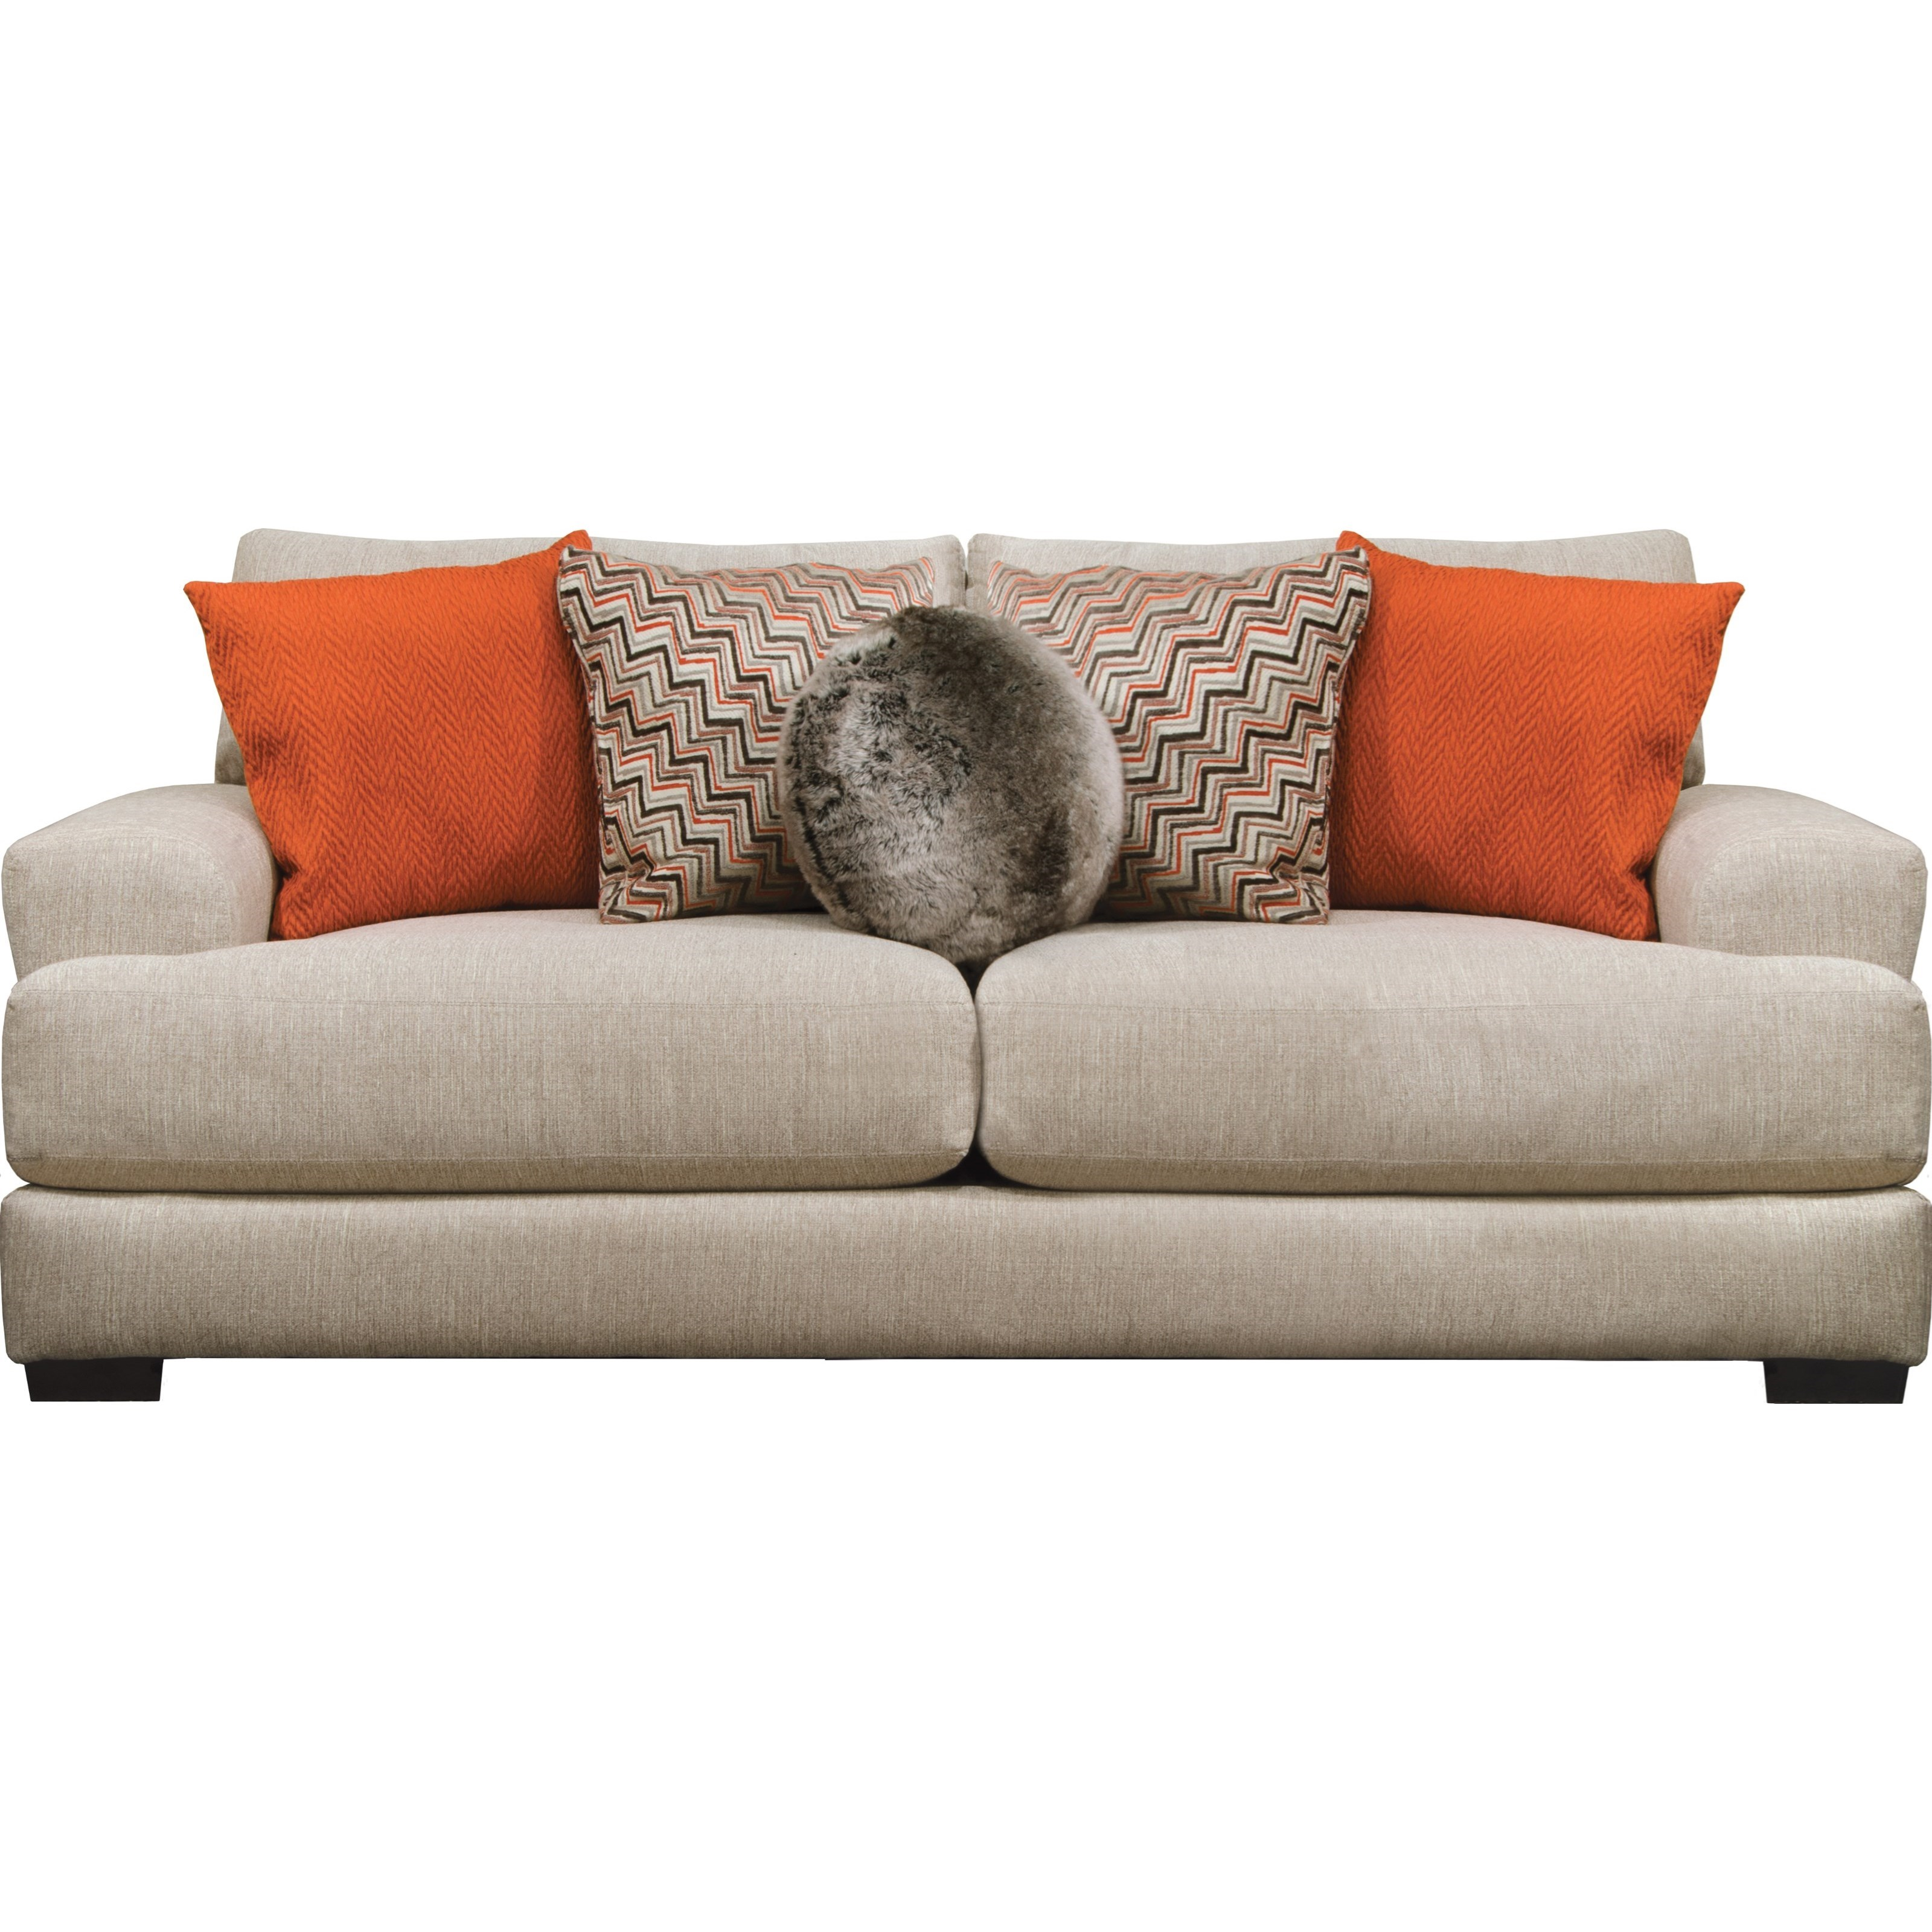 Ava Sofa by Jackson Furniture at Zak's Warehouse Clearance Center